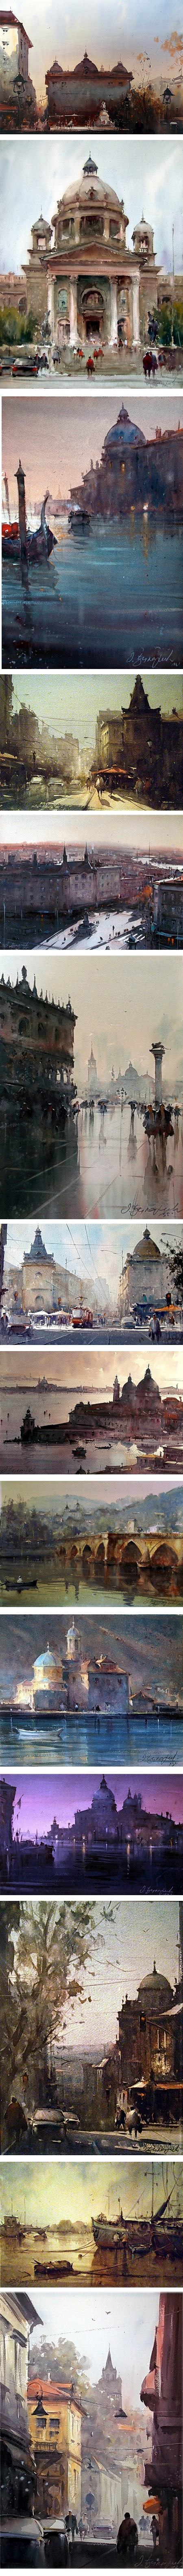 Dusan Djukaric, watercolor belgrade, Venice, Prague